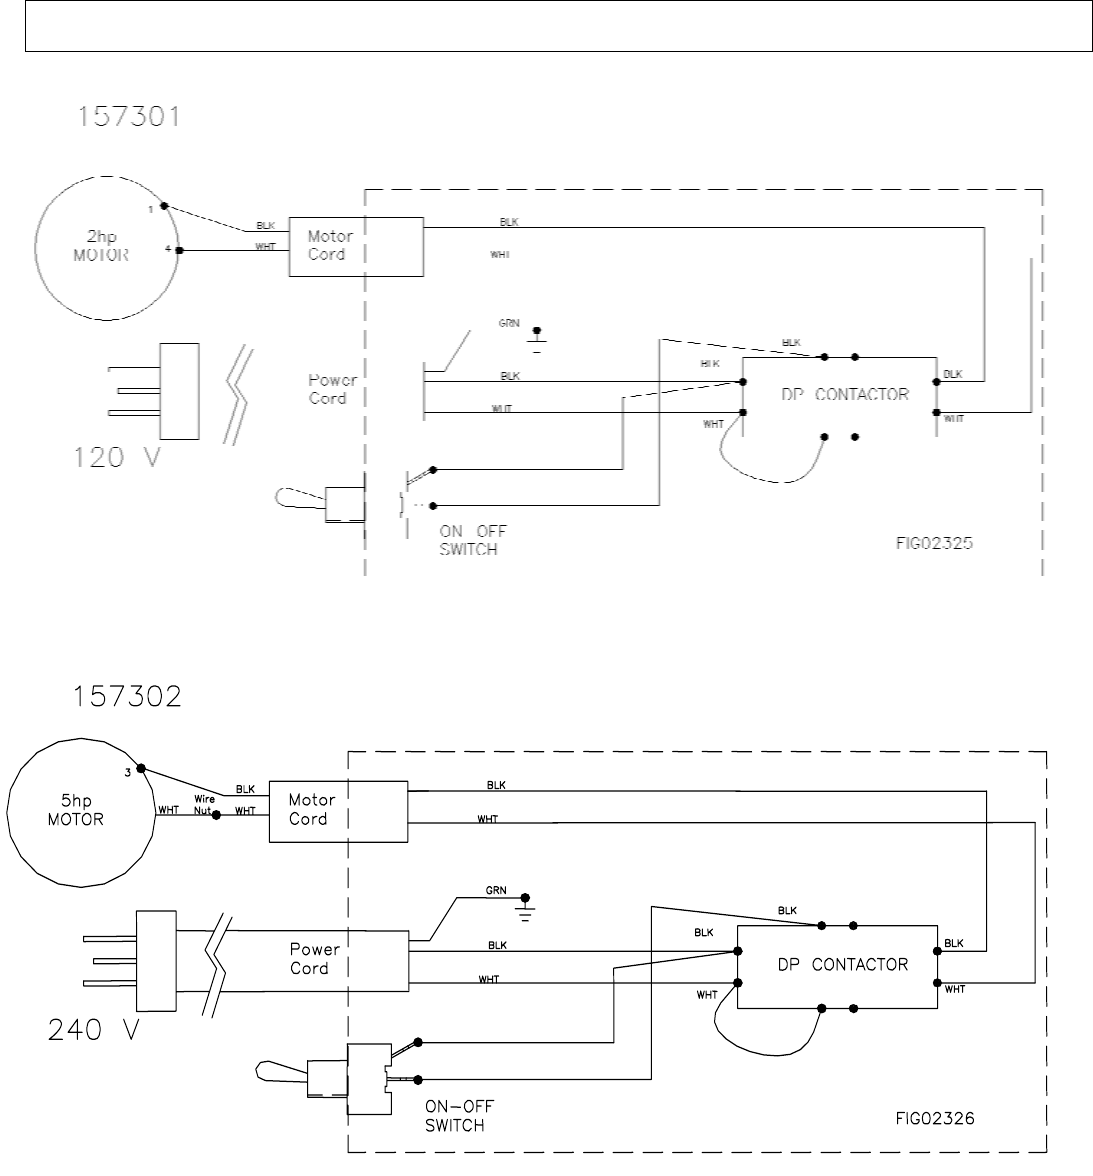 Star Wiring Diagram And Schematics Electric Golf Cart Diagrams Source North Pressure Washer M157300e Manual Page 21 Of 23 Rh Manuals World Hydro Tek